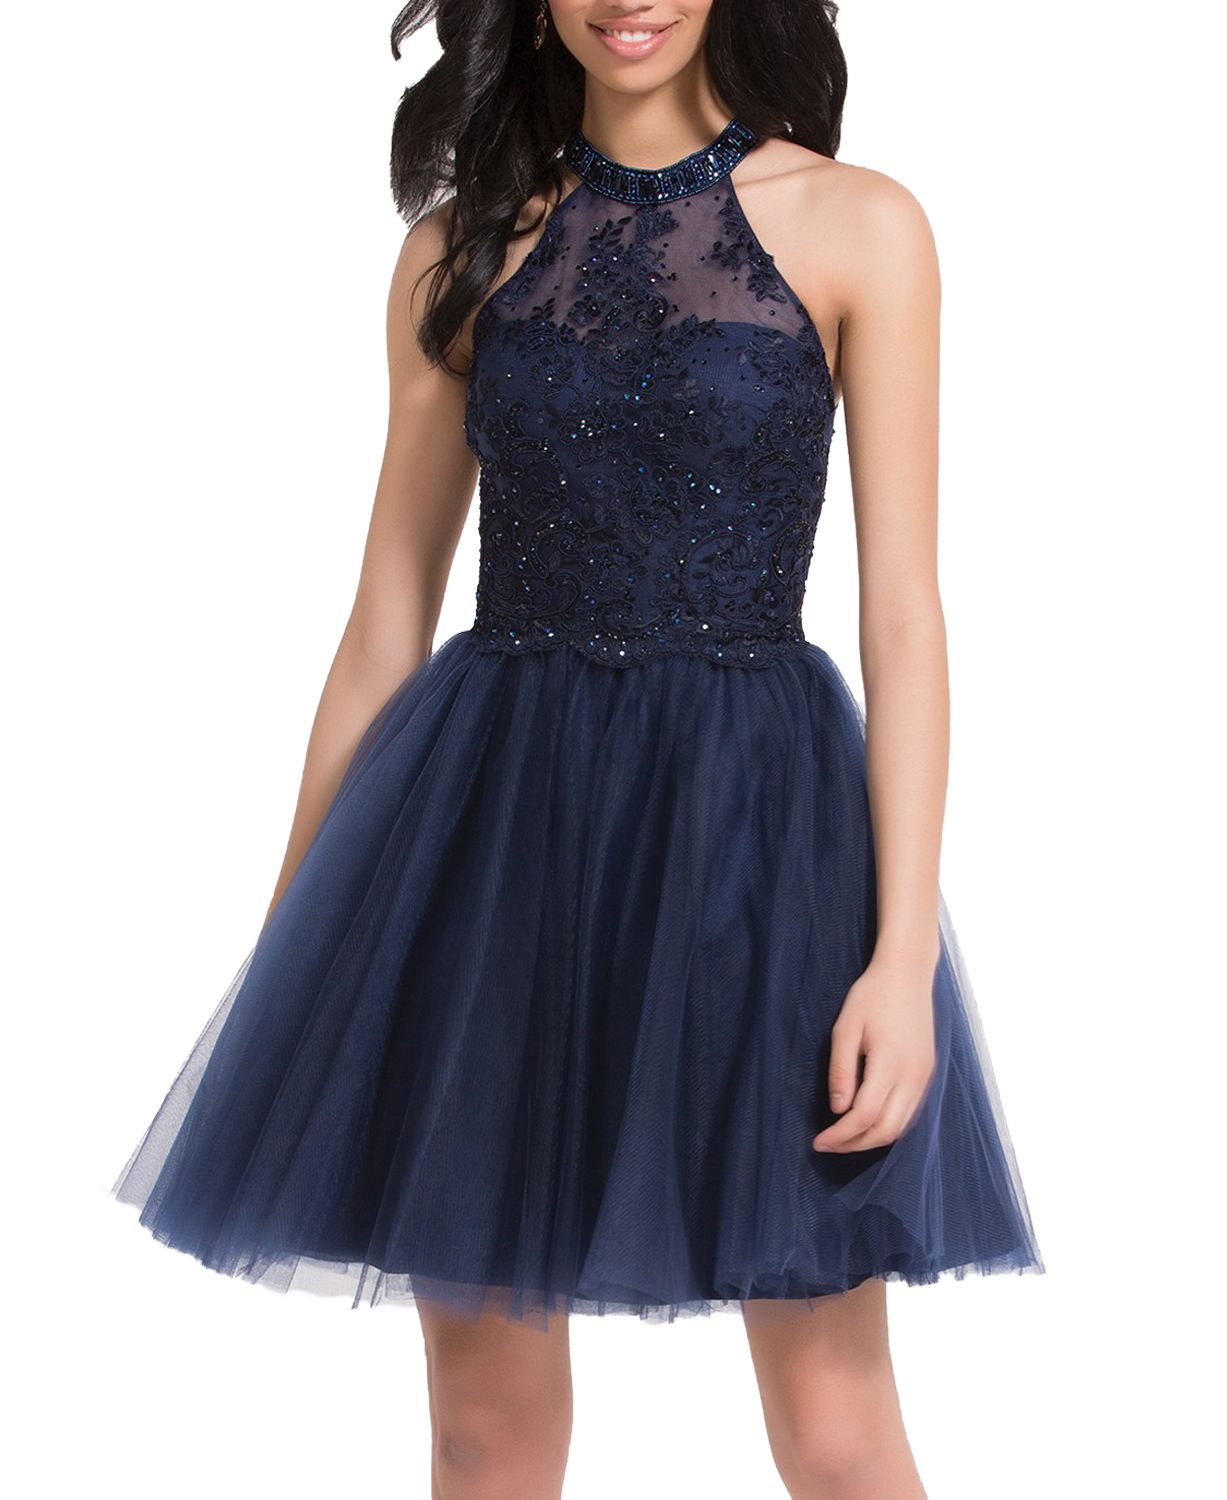 Halter neck a line navy blue tulle lace short homecoming dressnavy